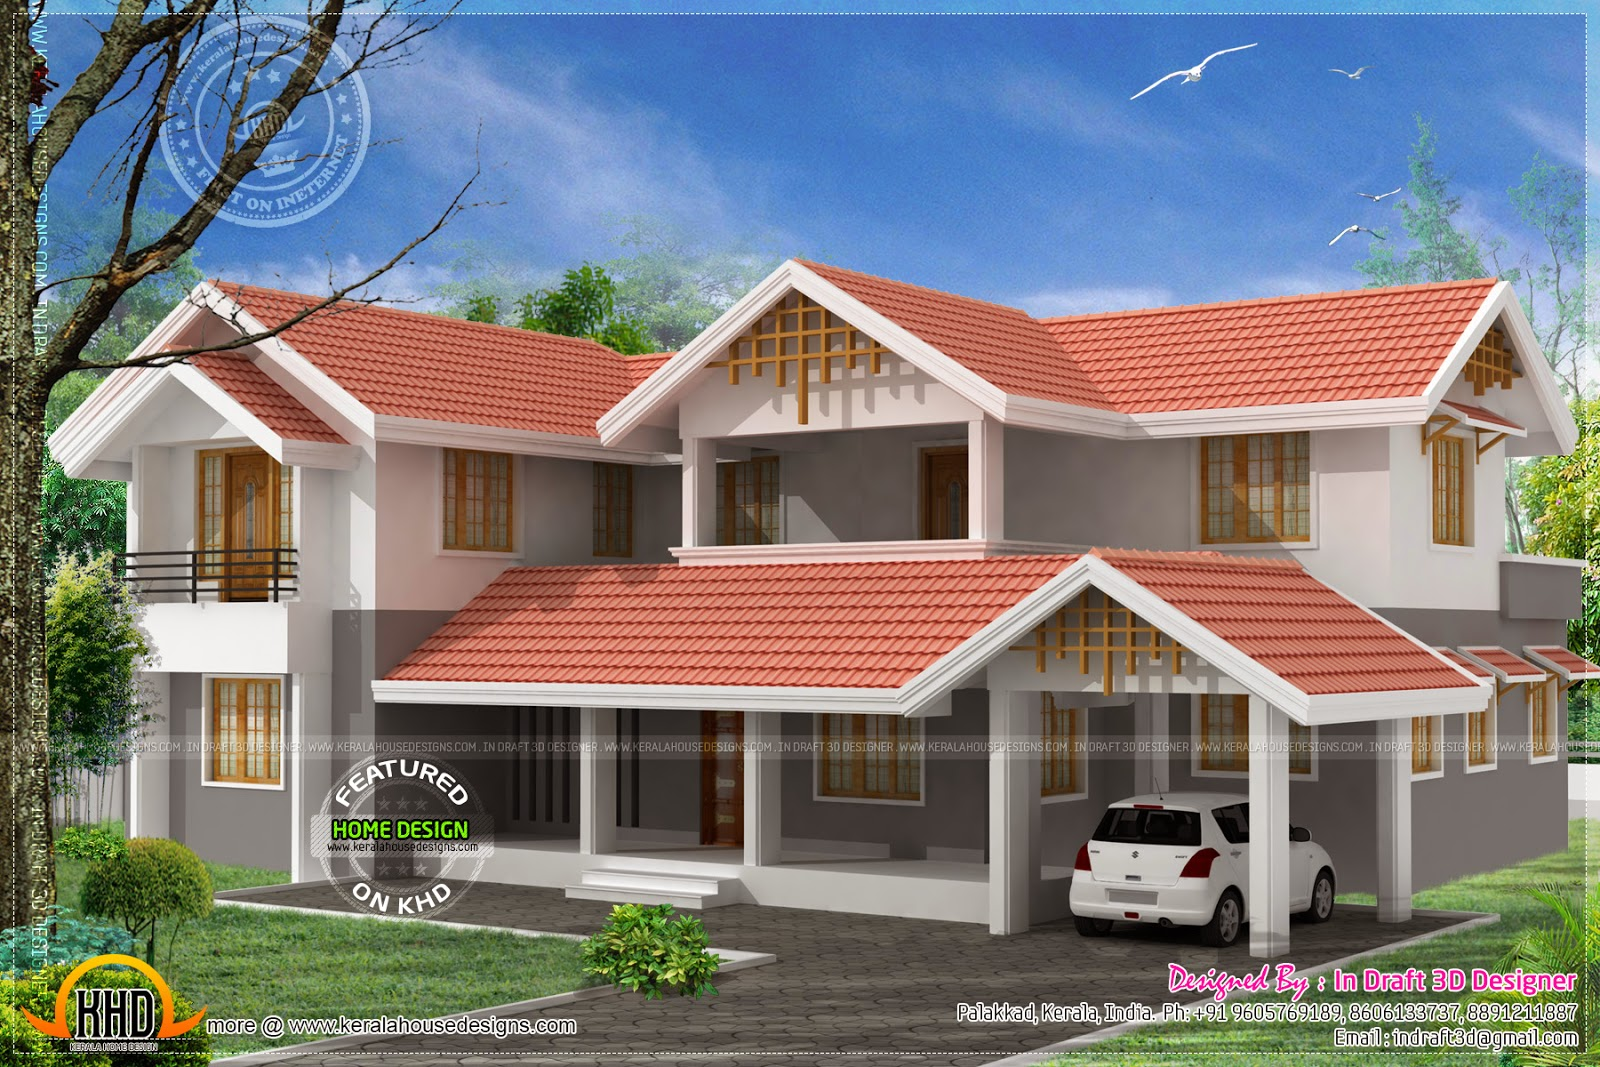 3d home design in 2860 sq feet kerala home design and for Home designs 3d images